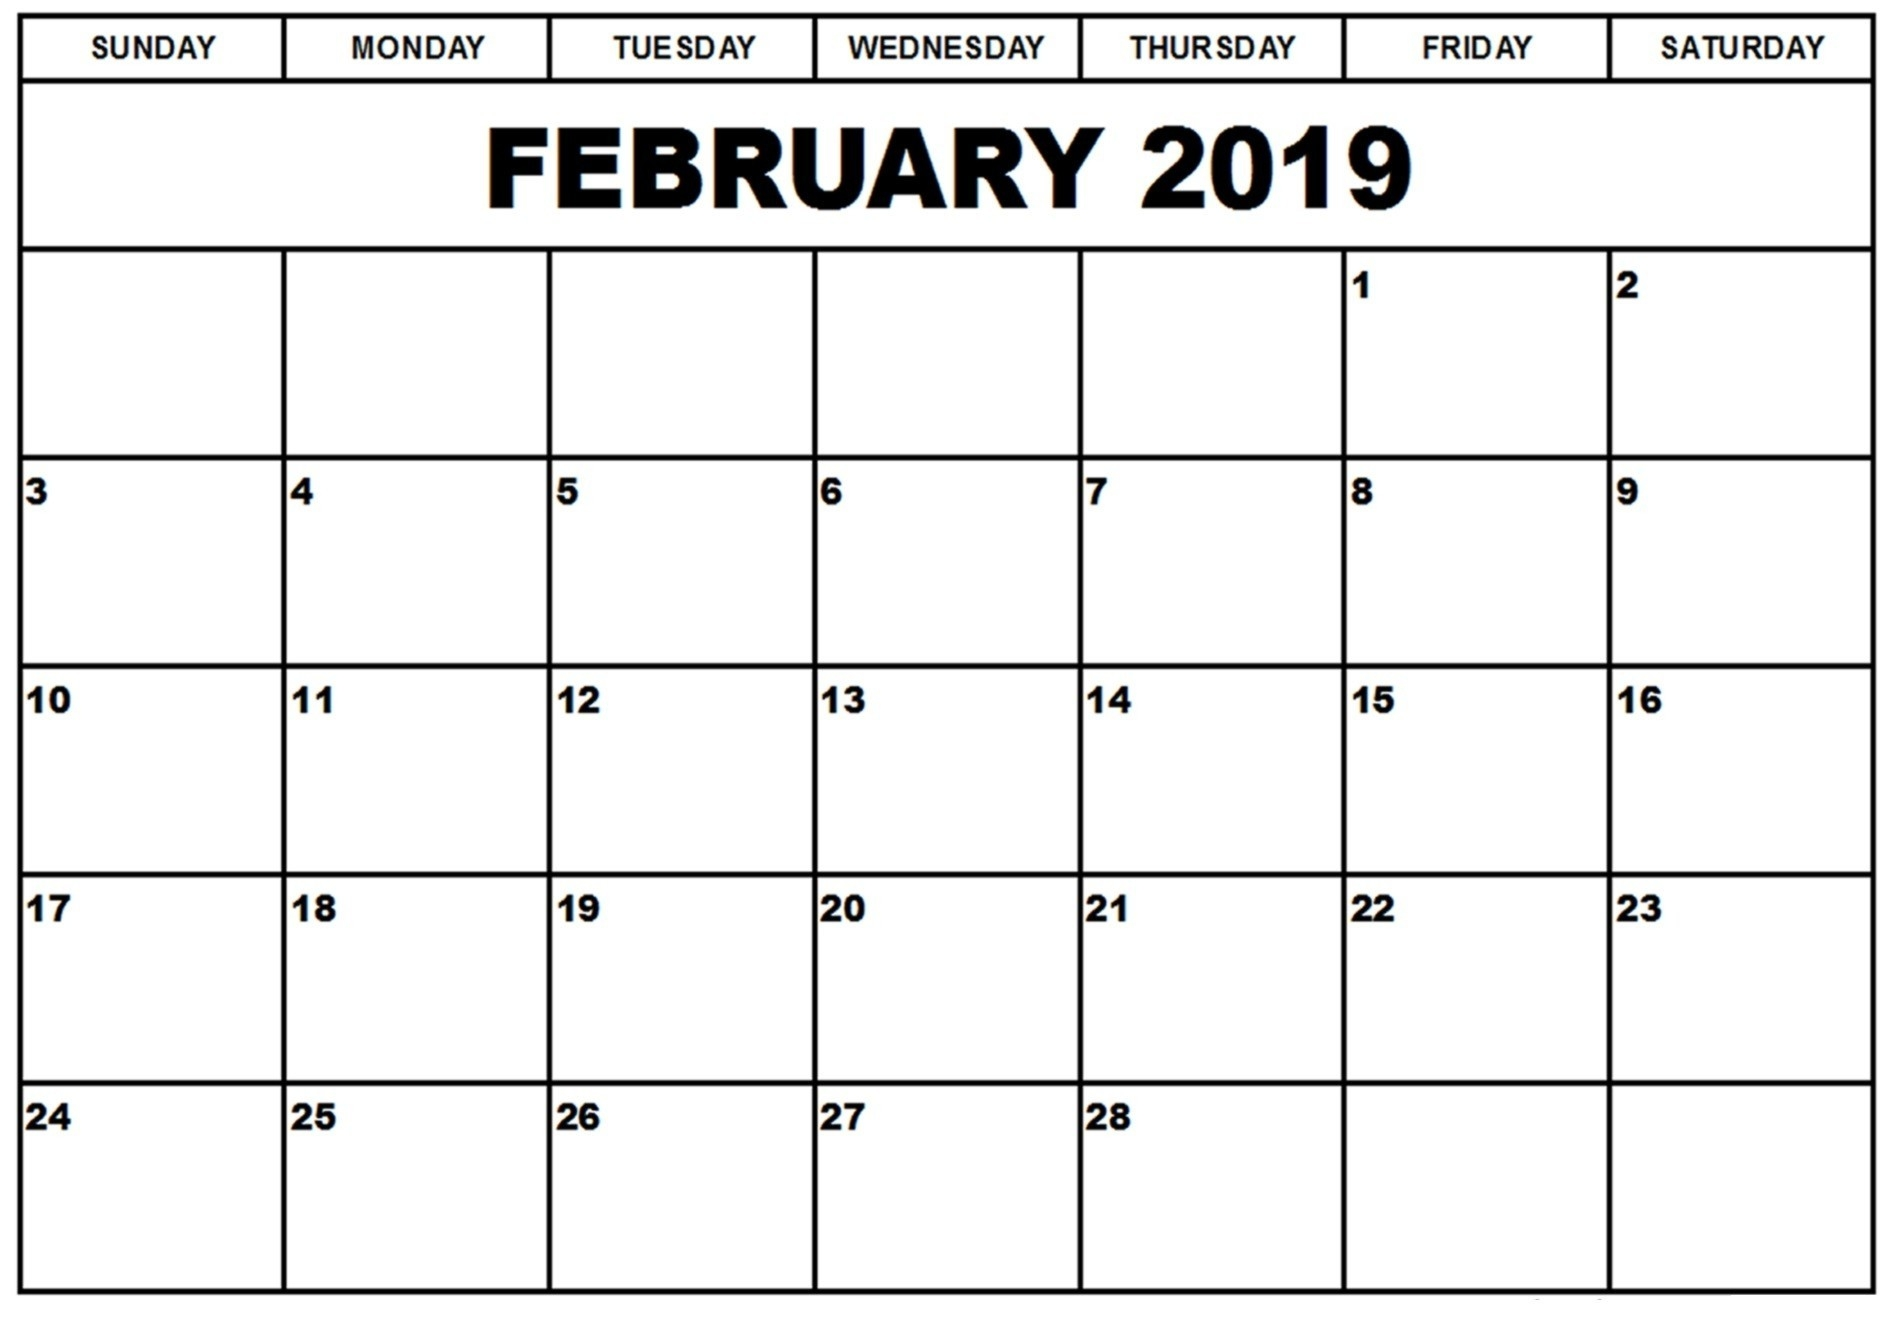 February 2019 Calendar Printable Templates | This Site Provides  Blank Time And Date Calendar